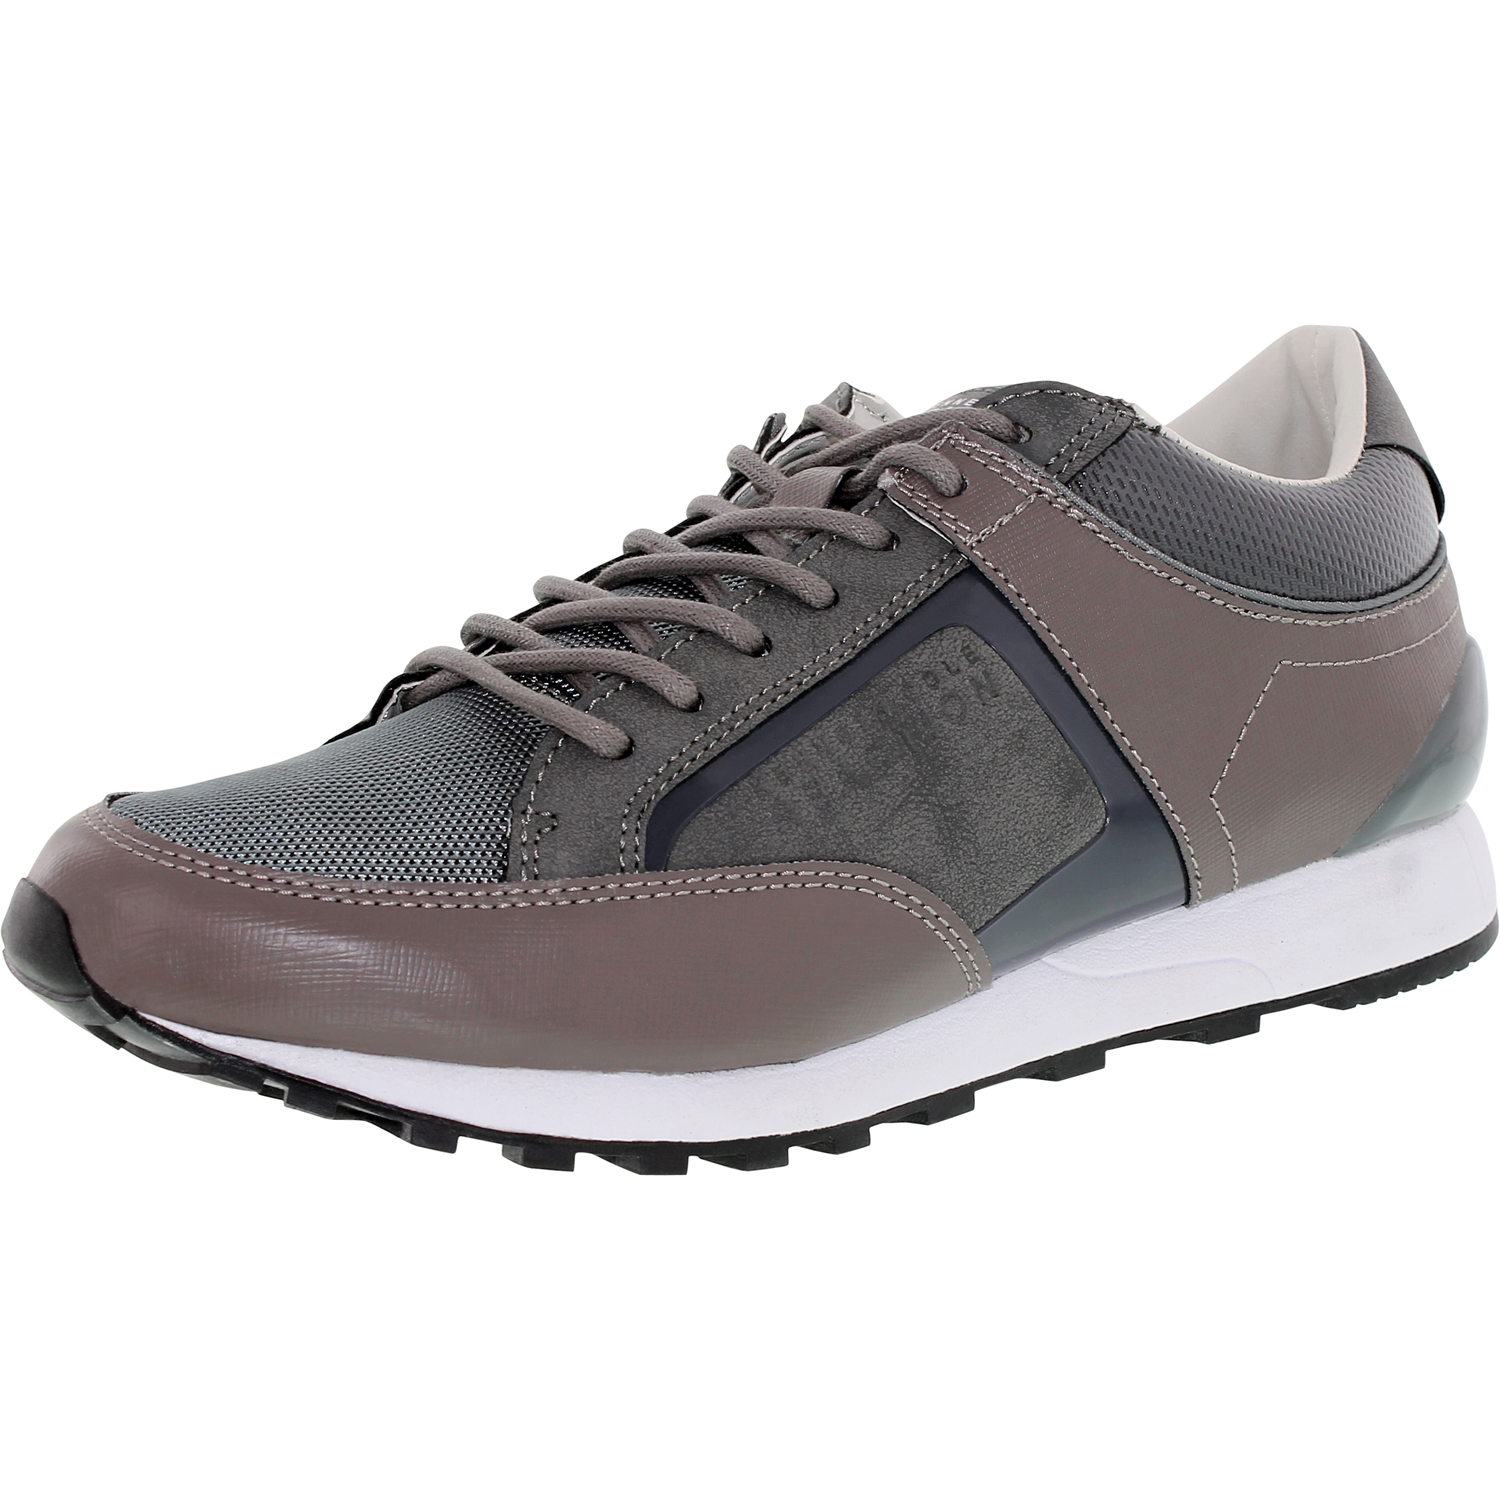 Kenneth Cole Men's That's A Rap Taupe Ankle-High Leather Fashion Sneaker - 7.5M